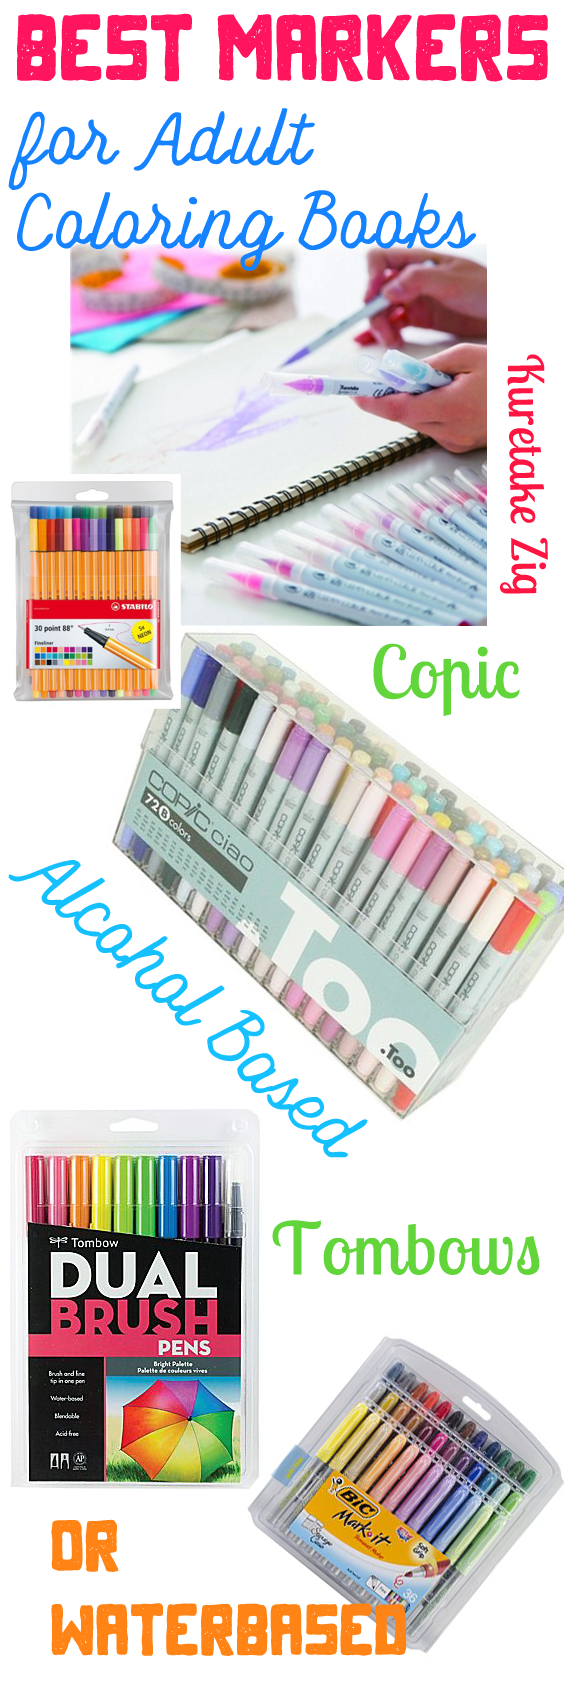 My Five Favorite Tools for Adult Coloring   Marker pen, Markers ...